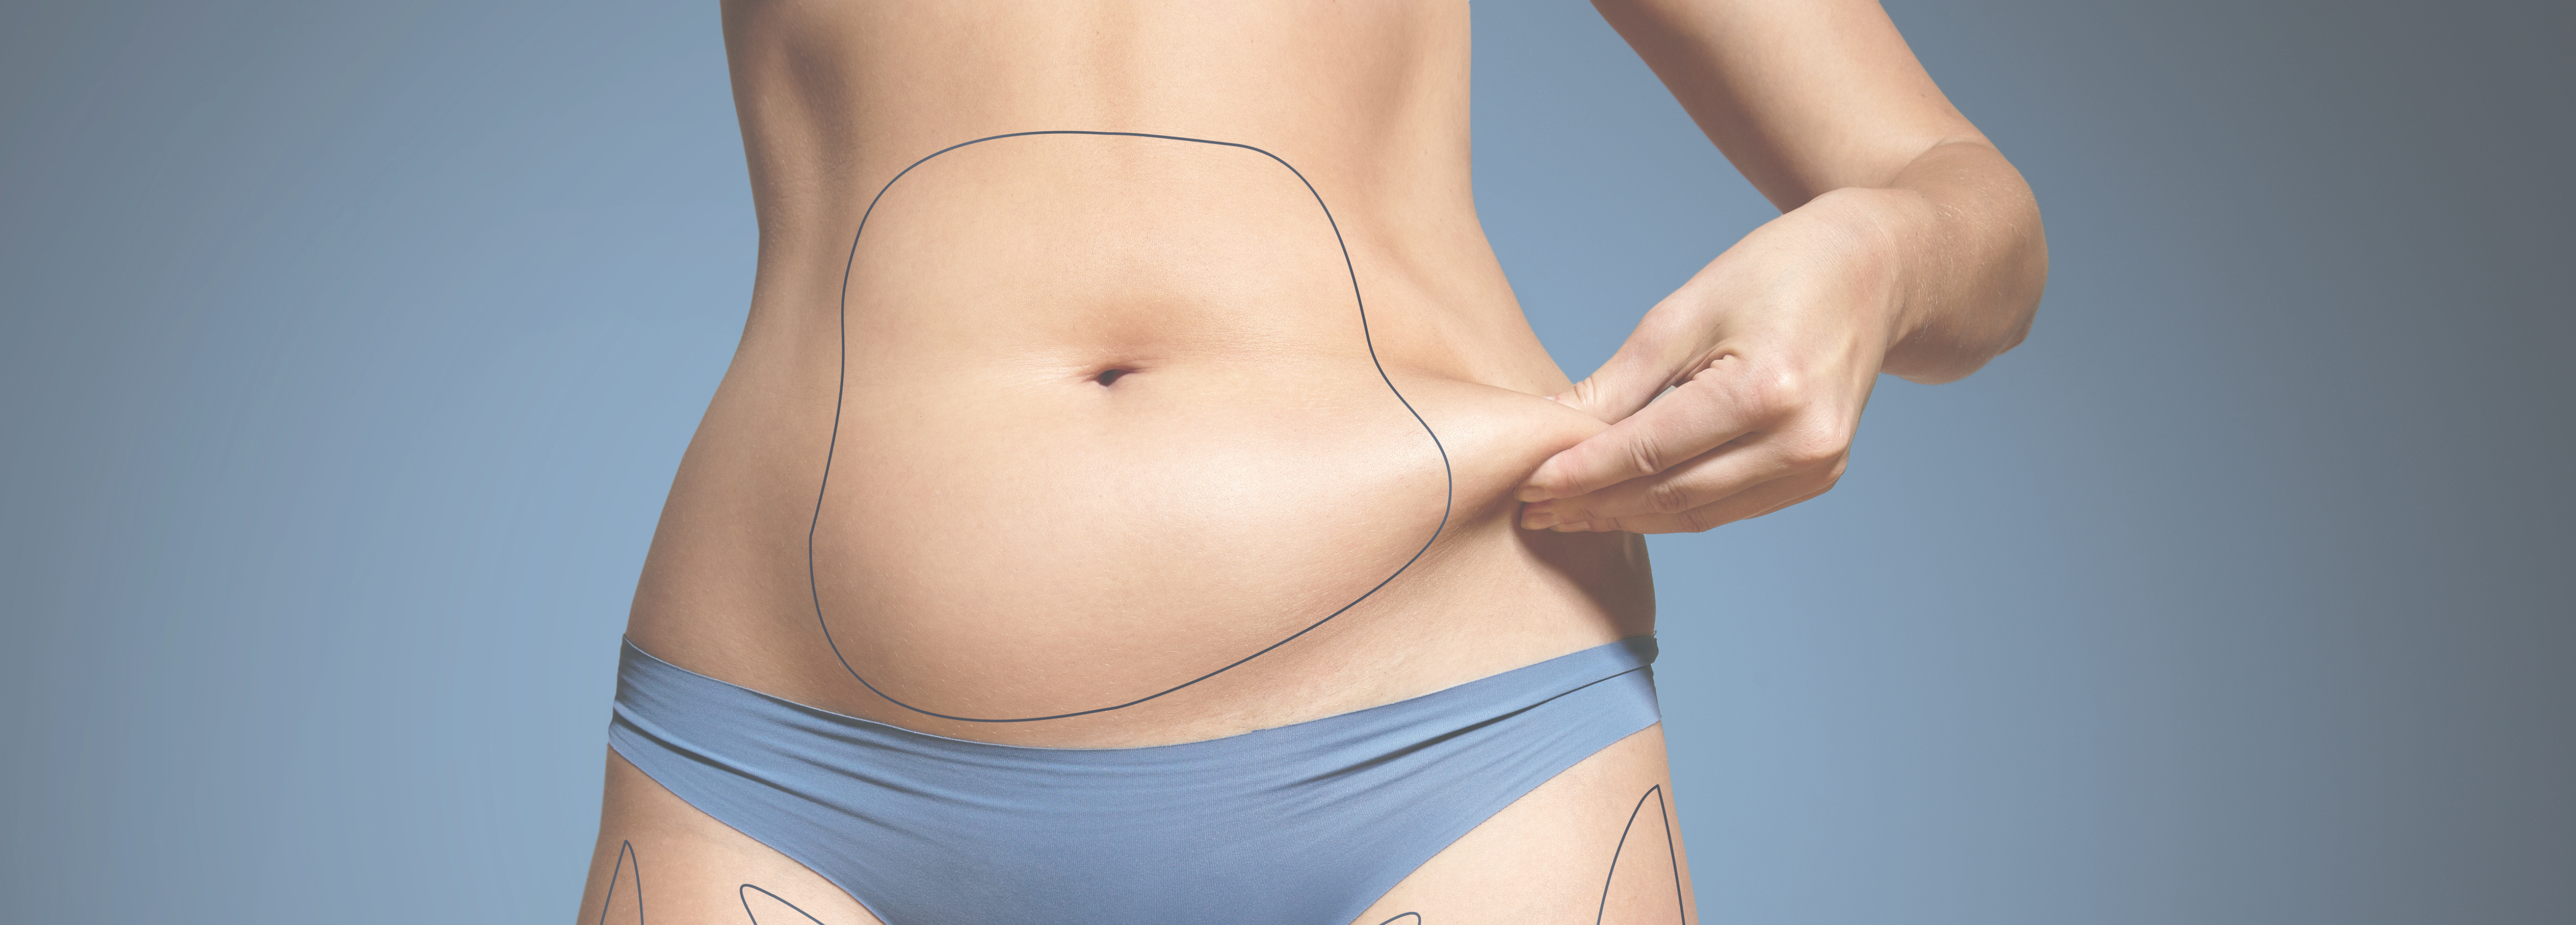 Affiliated Dermtology - CoolSculpting